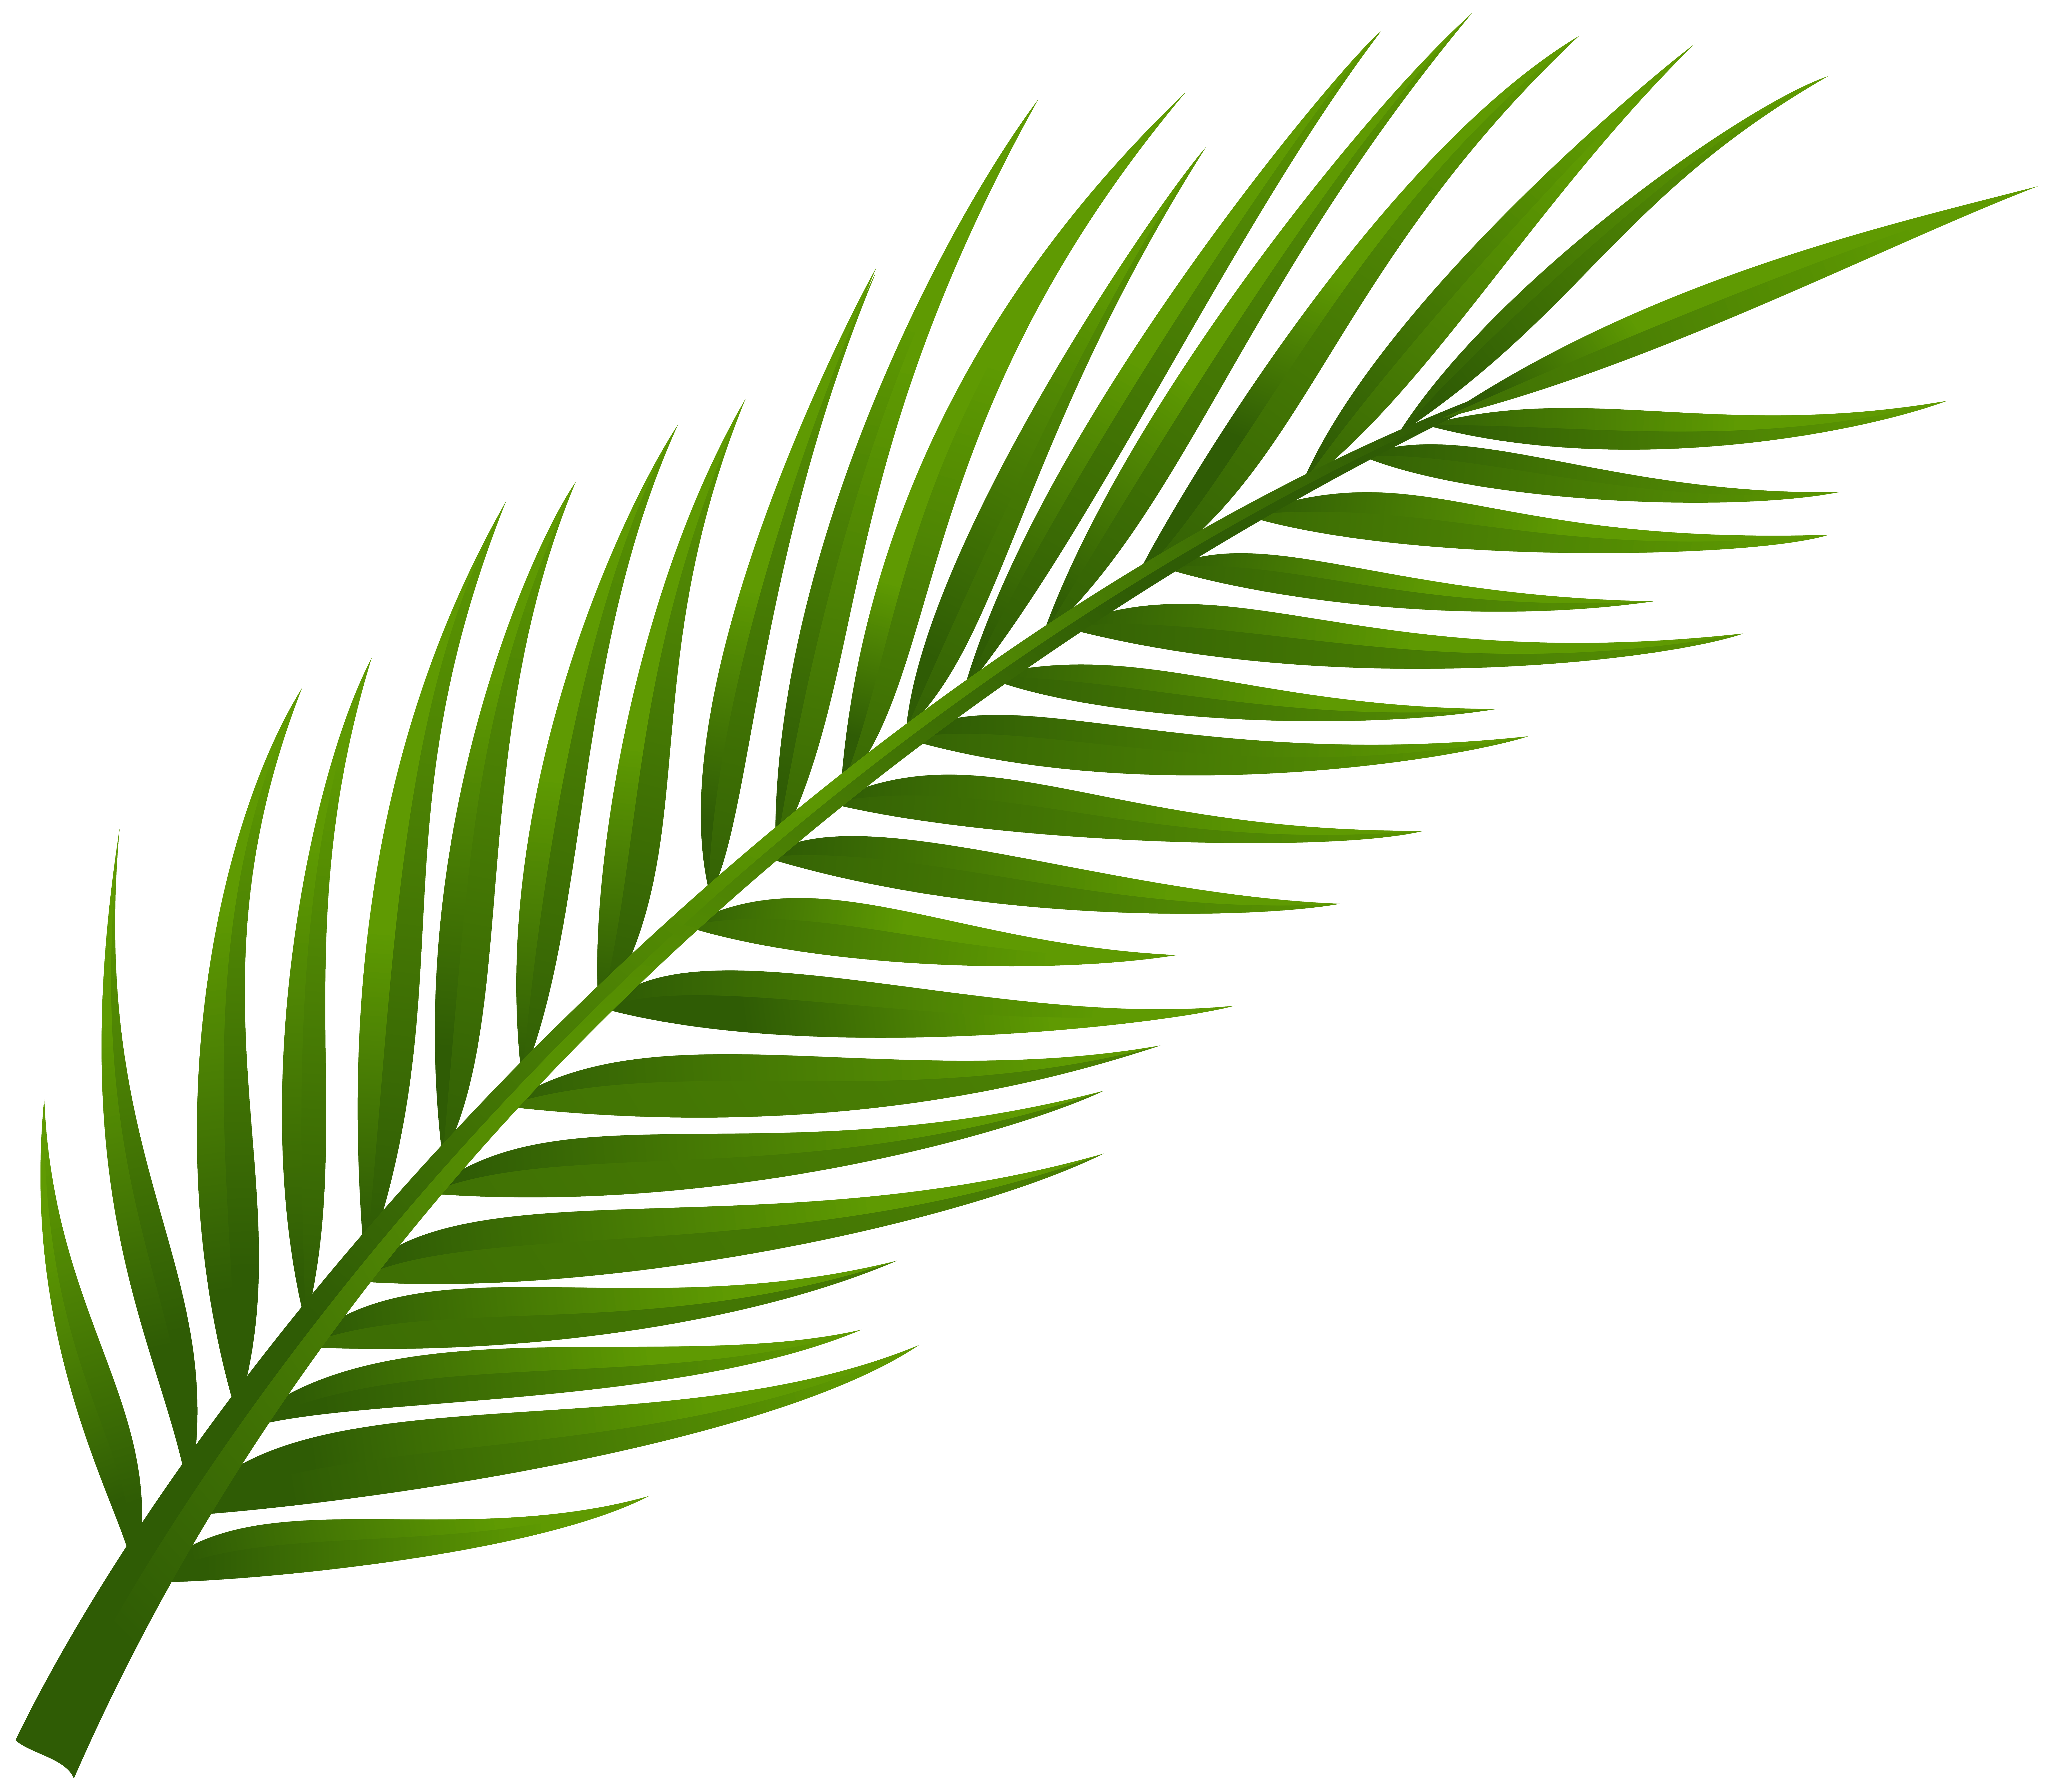 Palms clip art clipart images gallery for free download.